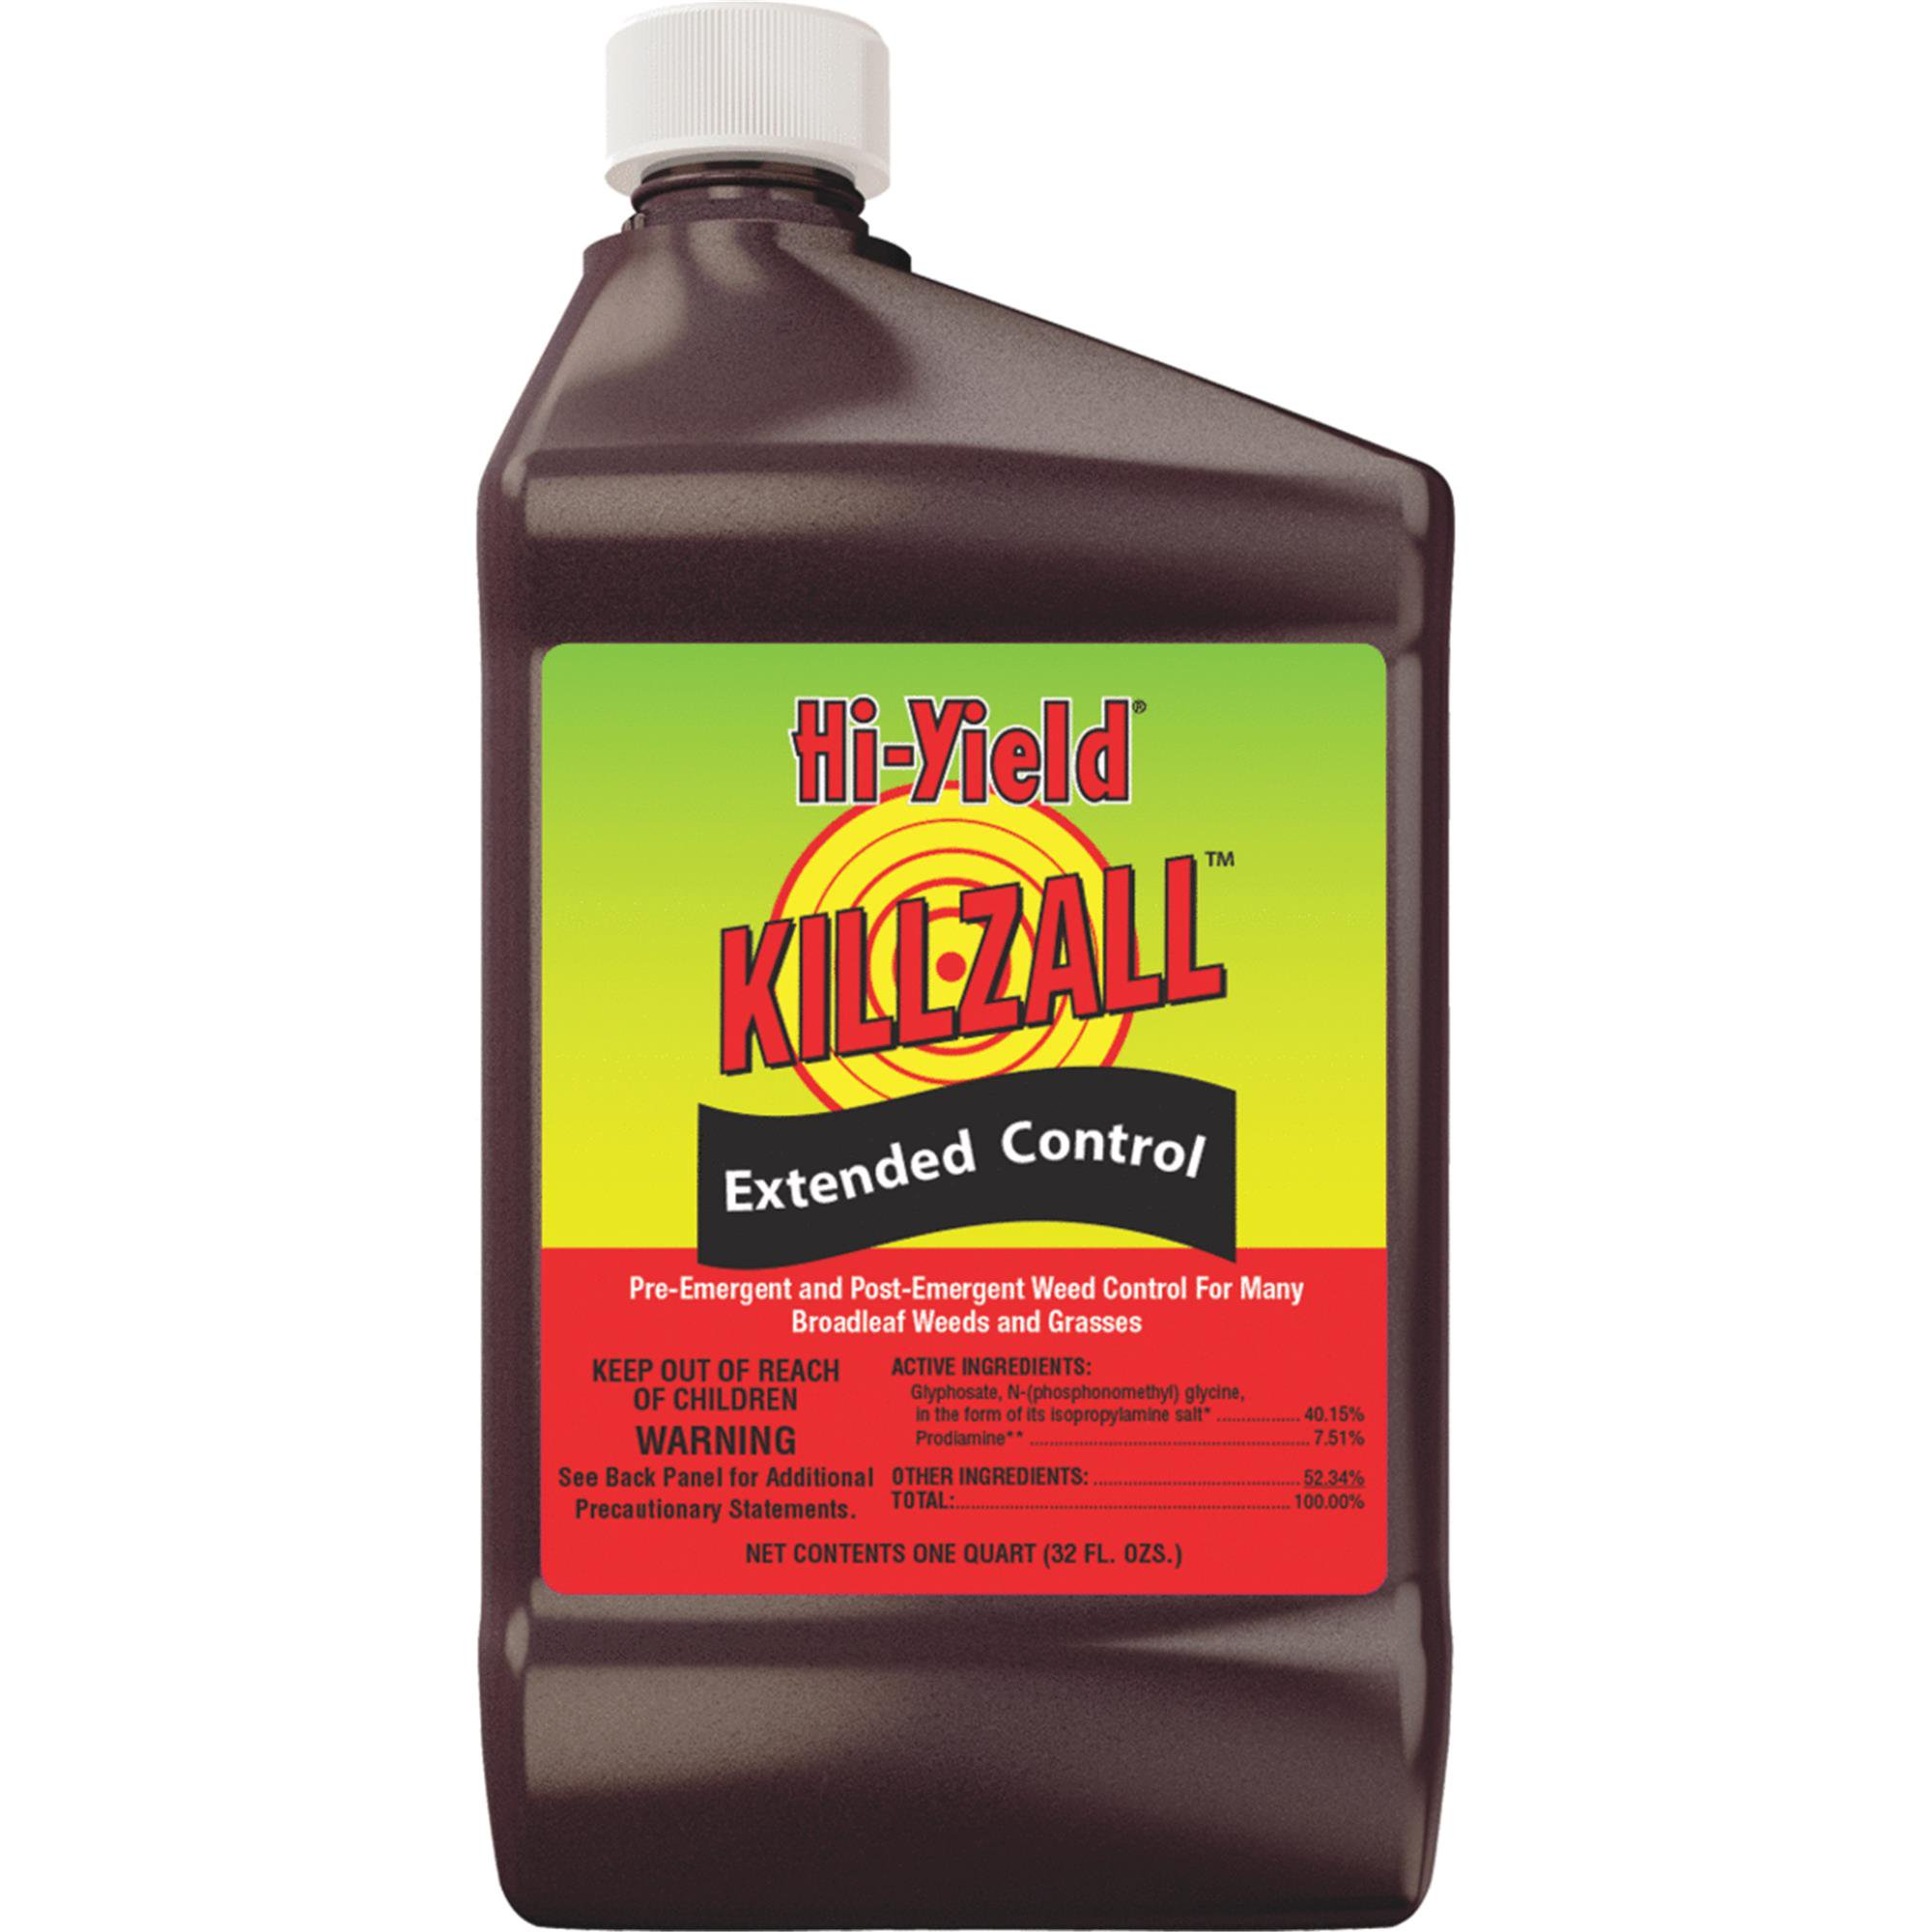 Hi Yield Killzall Extended Control Weed Amp Grass Killer